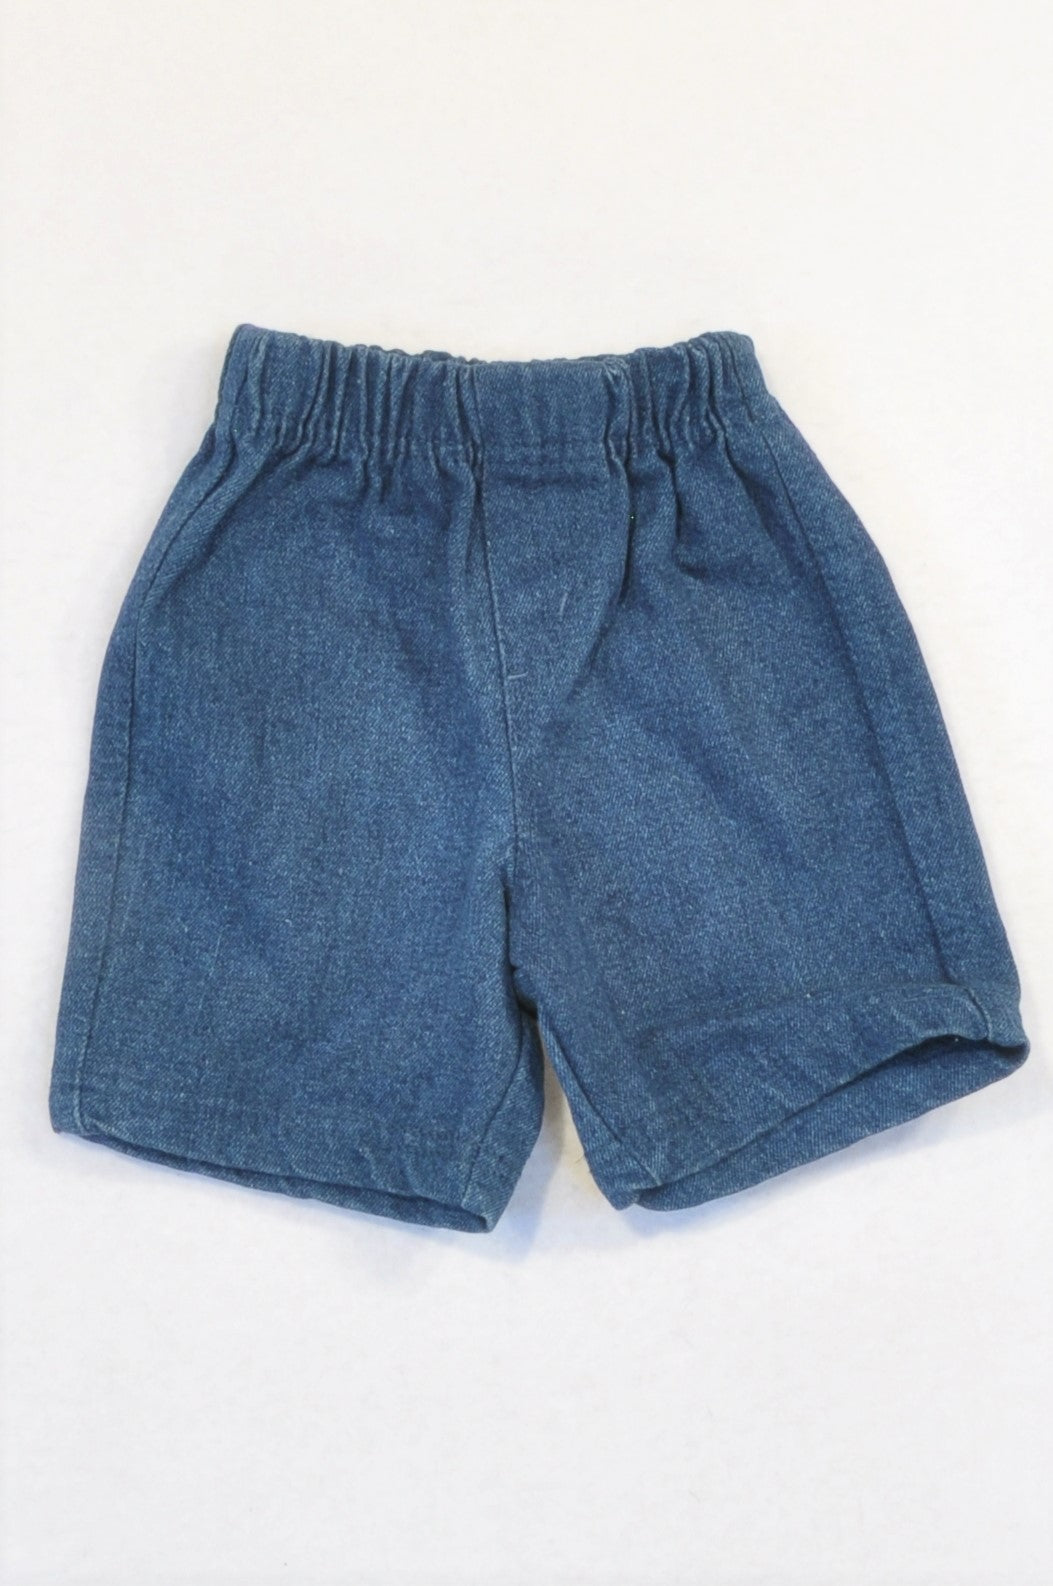 Ackermans Dark Blue Denim Shorts Unisex 3-6 months